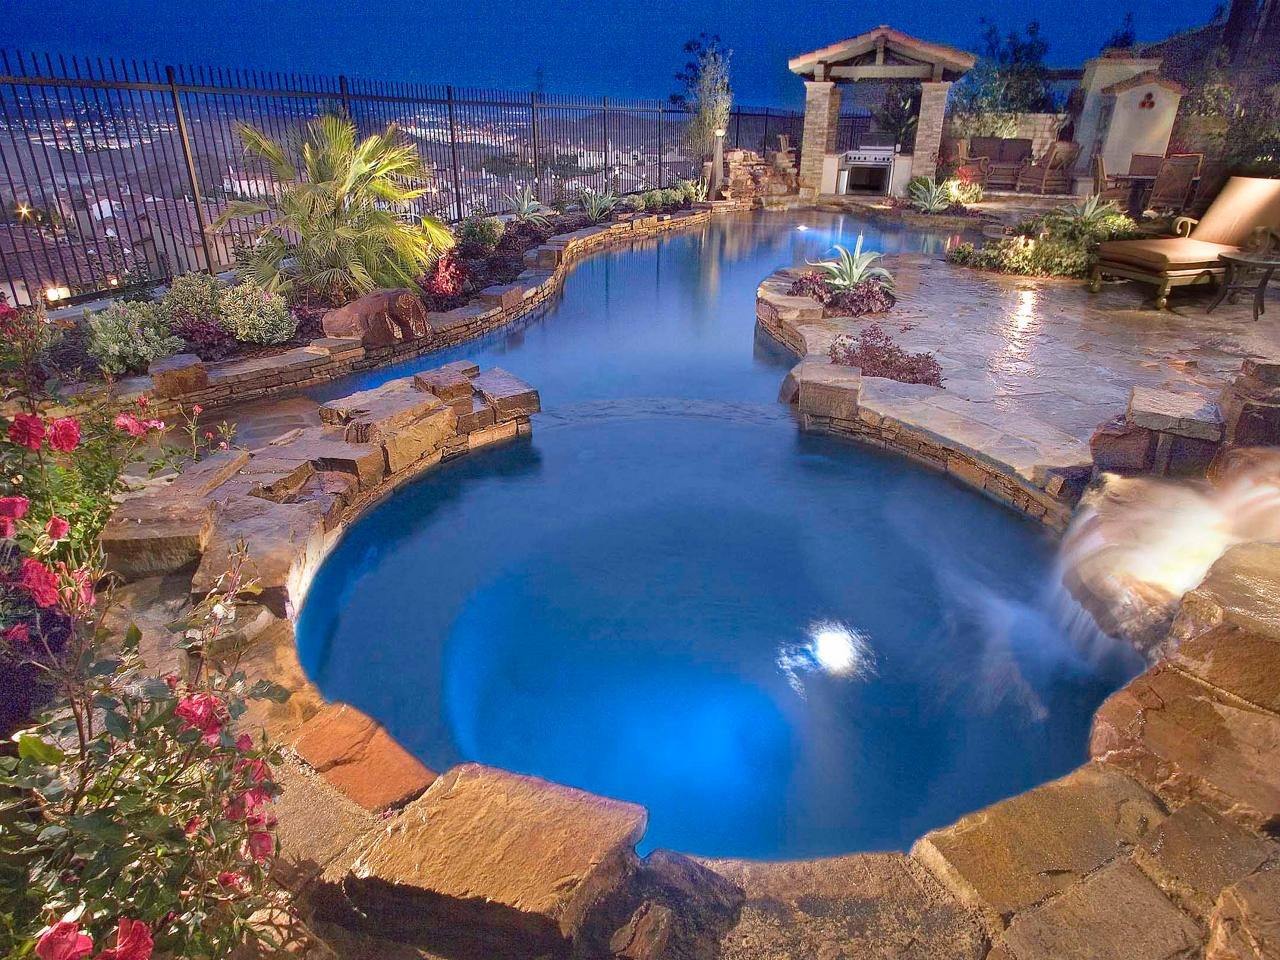 Lagoon Swimming Pool Designs : Lagoon Swimming Pool Designs : Pool Deck Surface Options